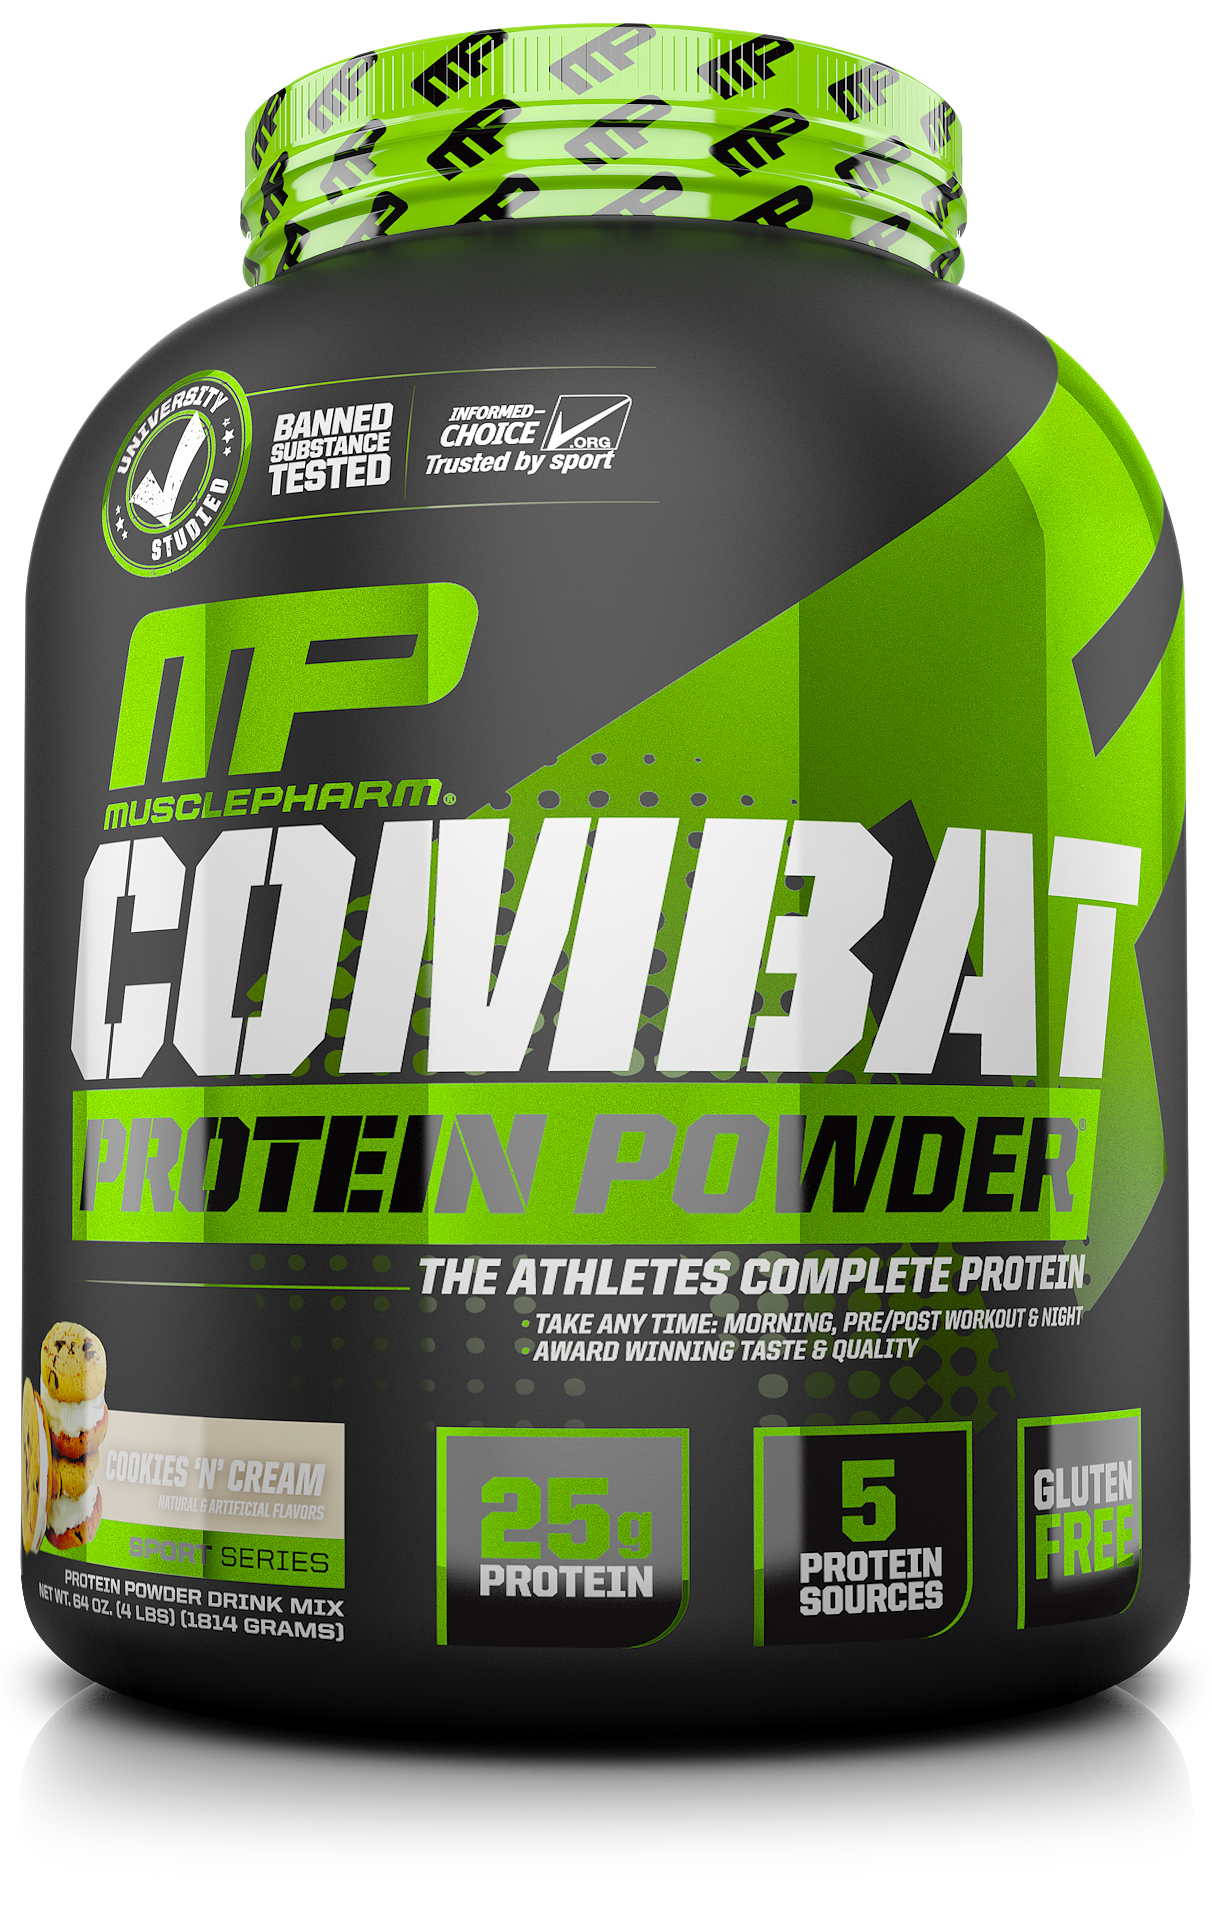 MusclePharm Combat Protein Powder, Cookies & Cream, 25g Protein, 4 Lb